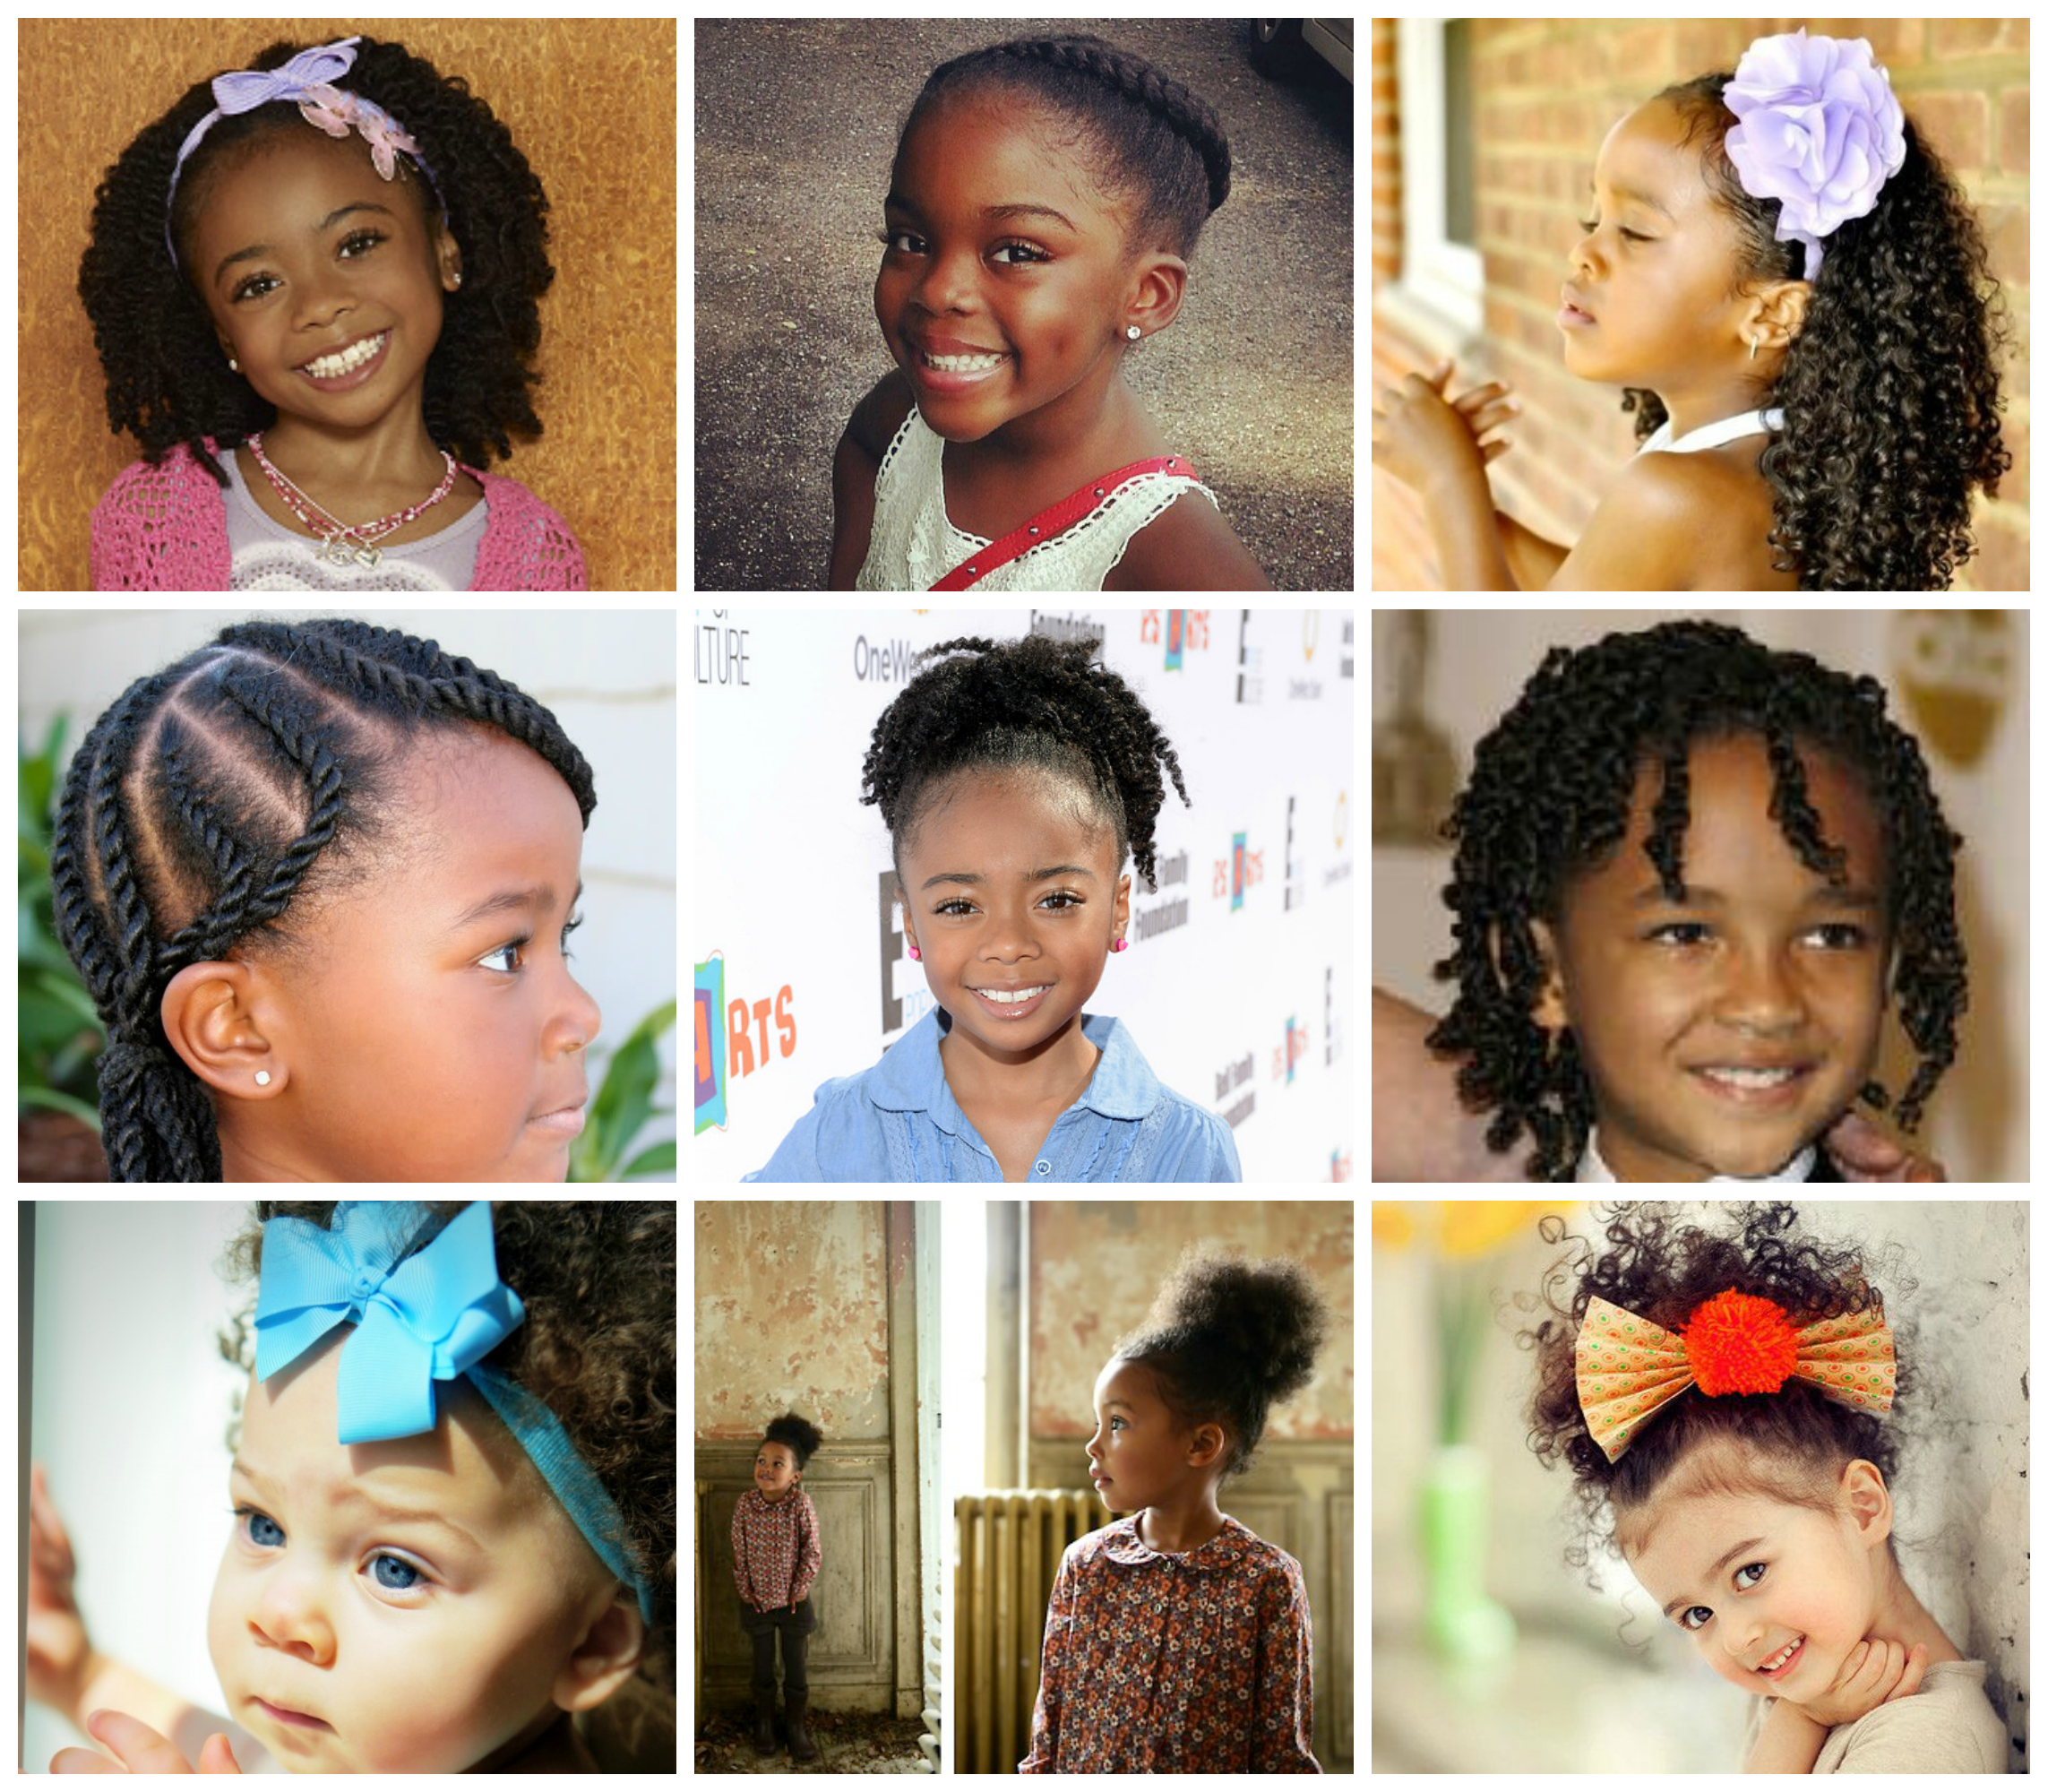 back to school hairstyle ideas for kids and teens | my curls